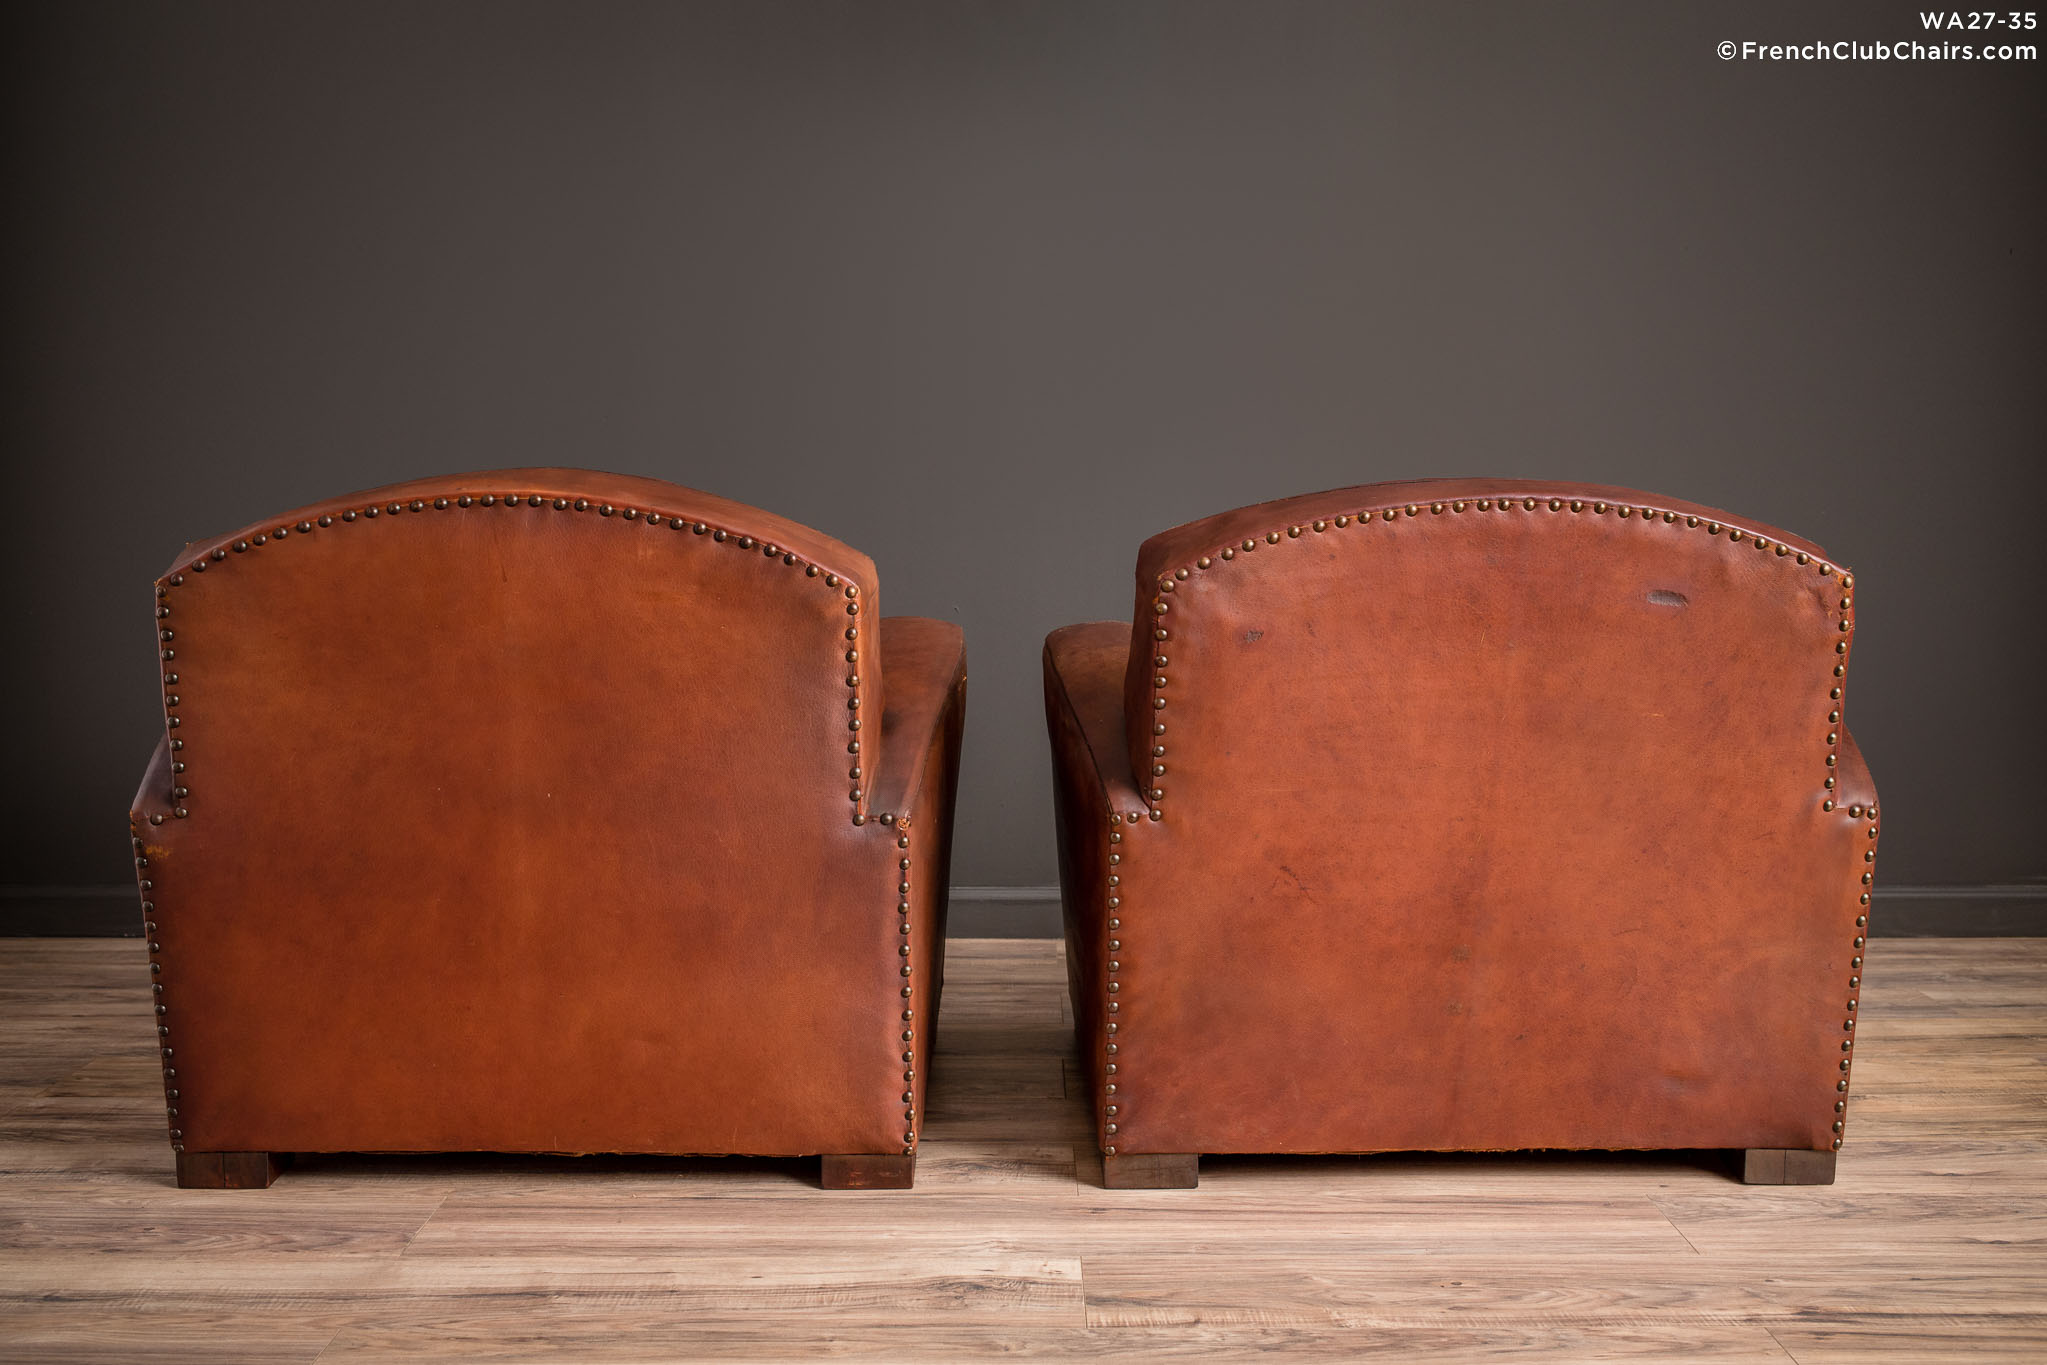 WA_27-35_Cinema_Dark_Lounge_Pair_R_2BK-v01-williams-antiks-leather-french-club-chair-wa_fcccom